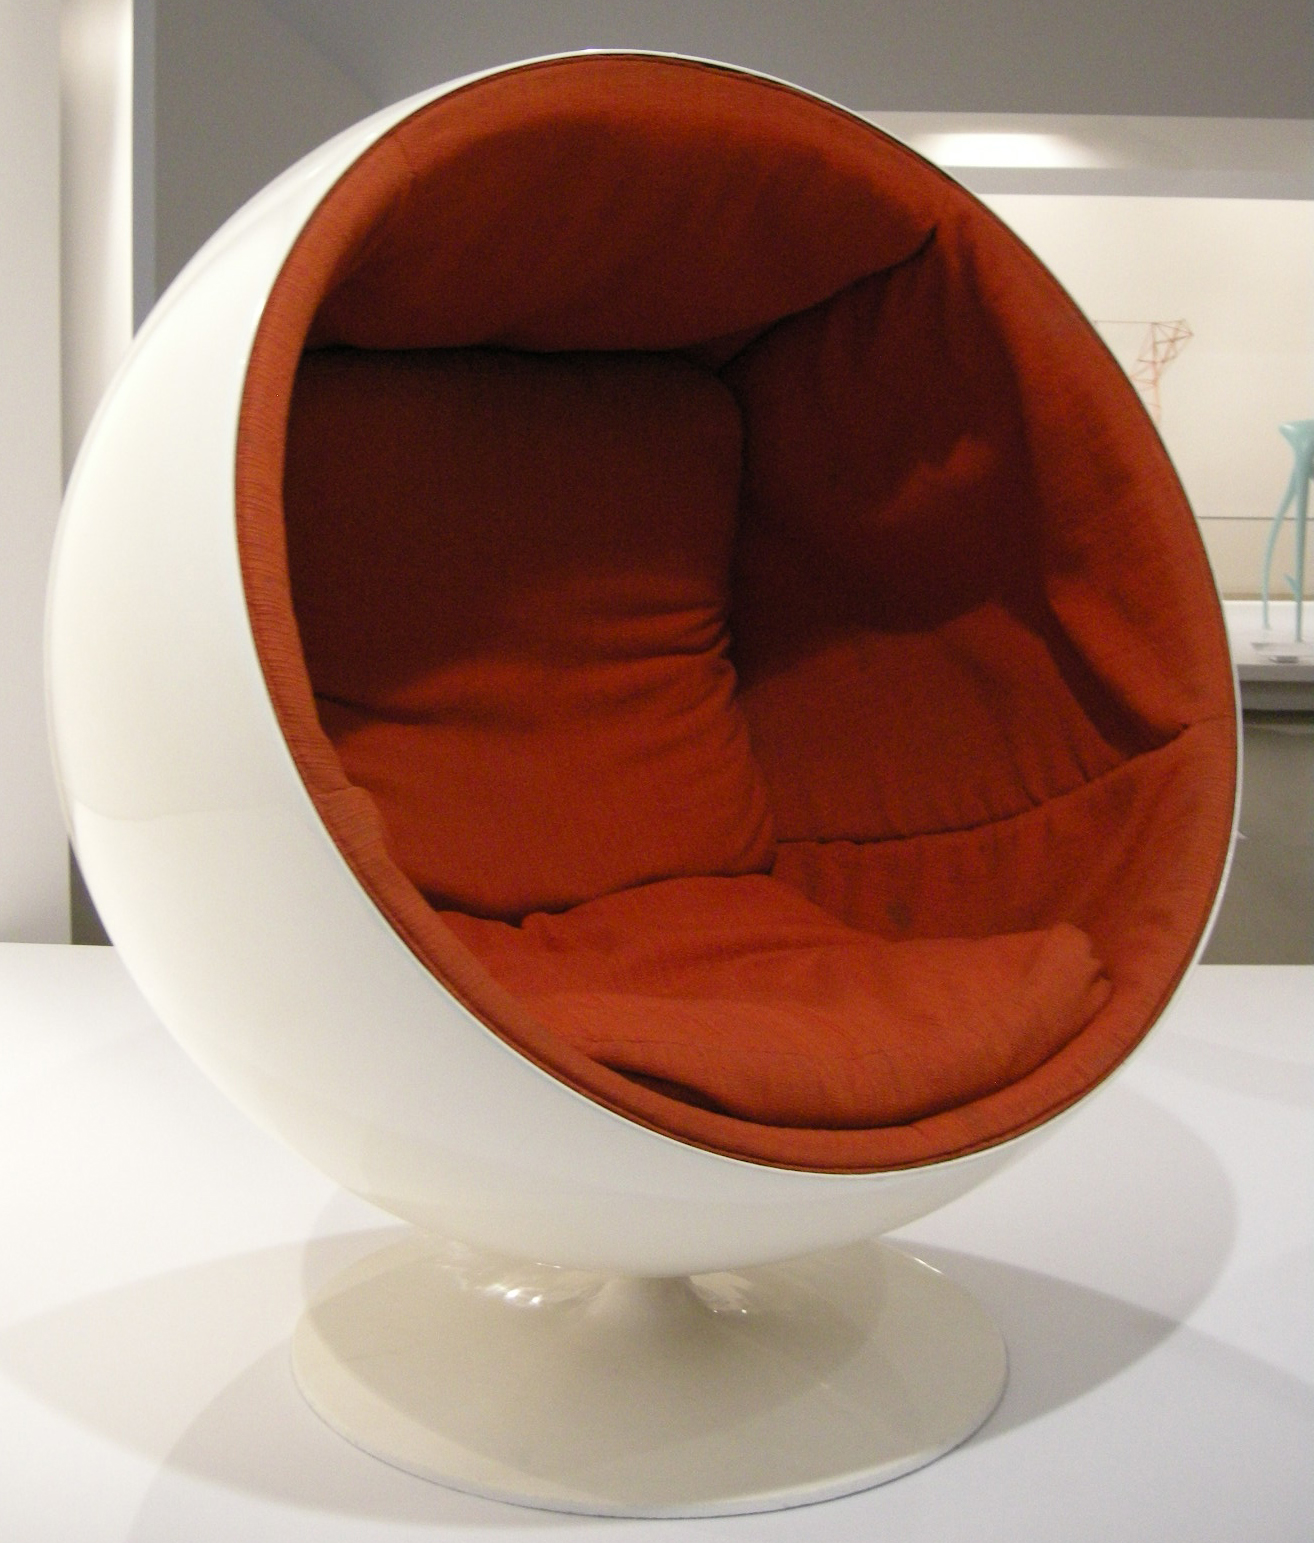 File:Ngv Design, Eero Aarnio, Globe Chair 1963 65 01.JPG